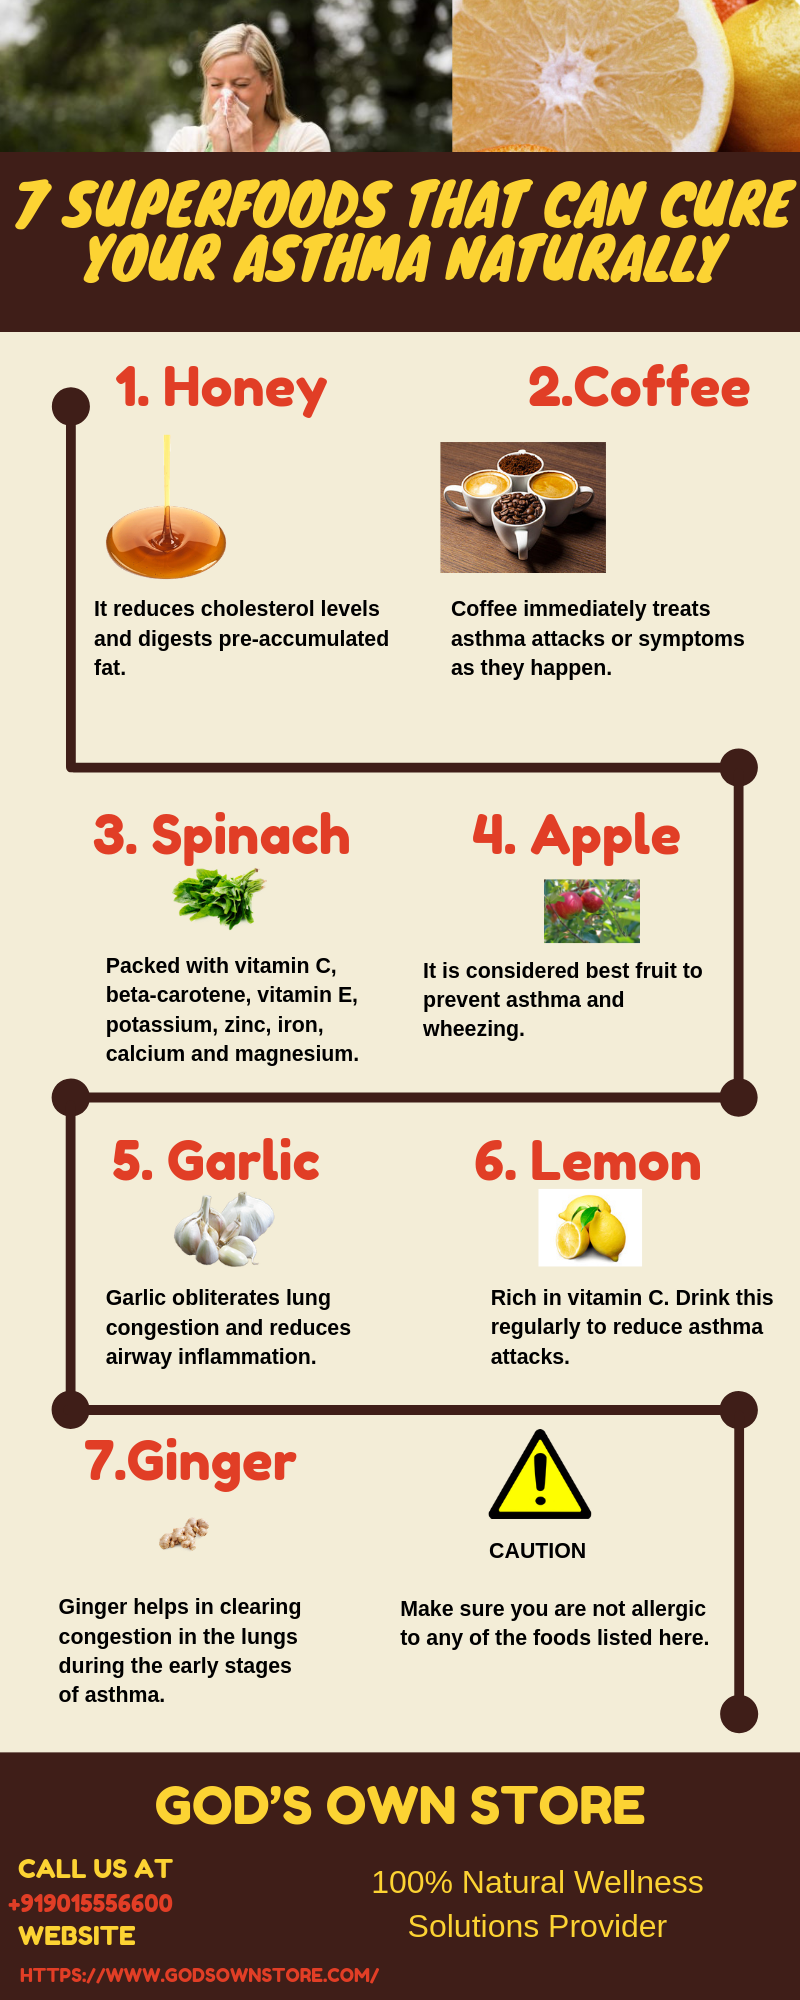 7-SUPERFOODS-THAT-CAN-CURE-YOUR-ASTHMA-NATURALLY-infographic-plaza